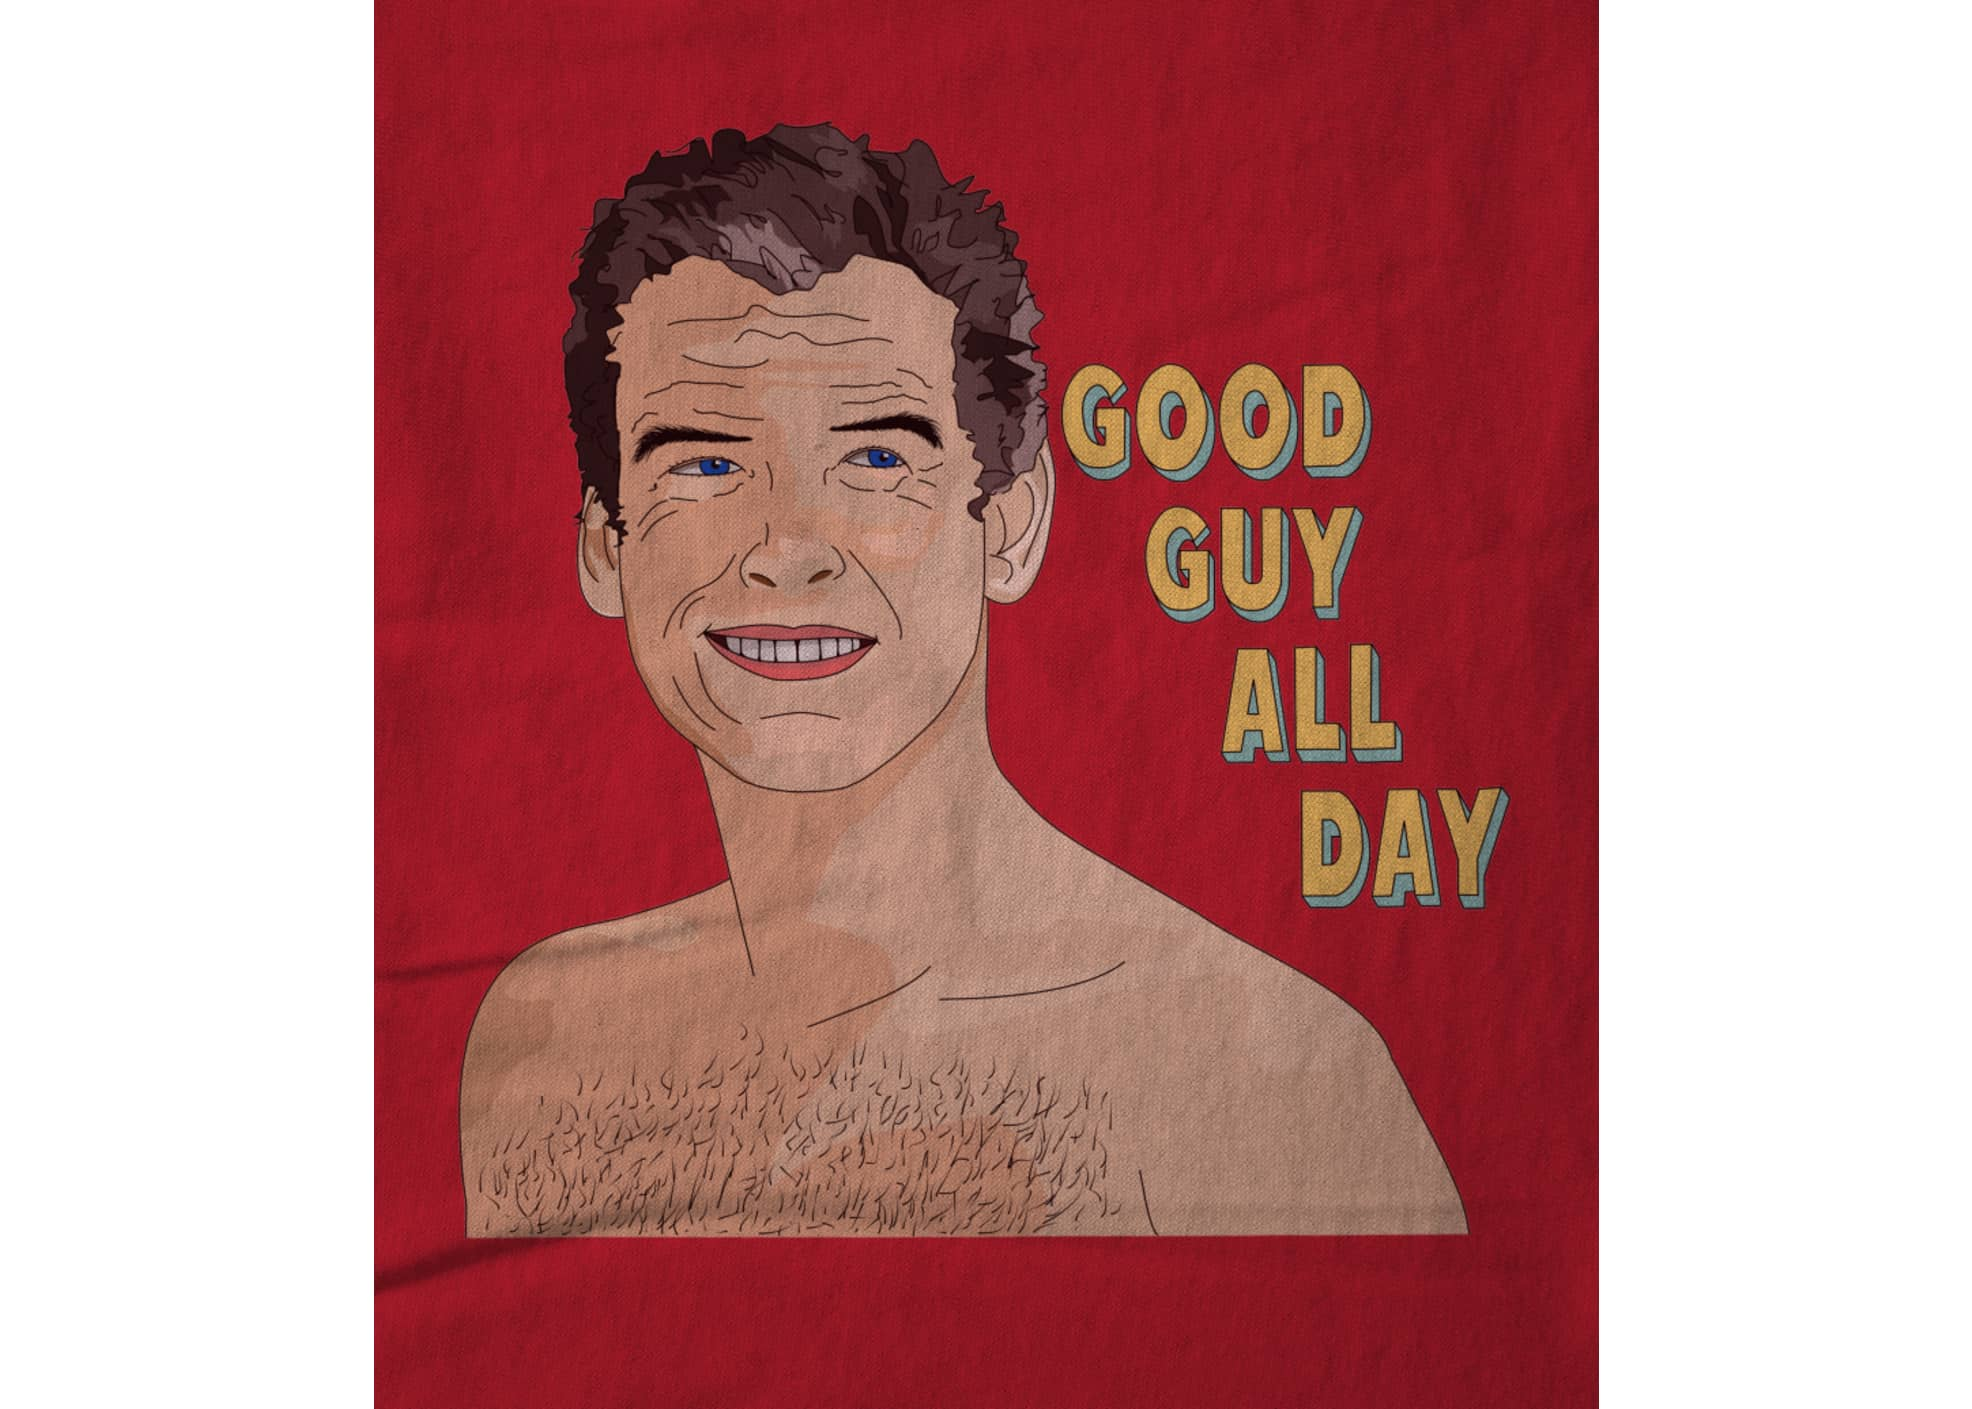 What we remember good guy all day red 1524259519